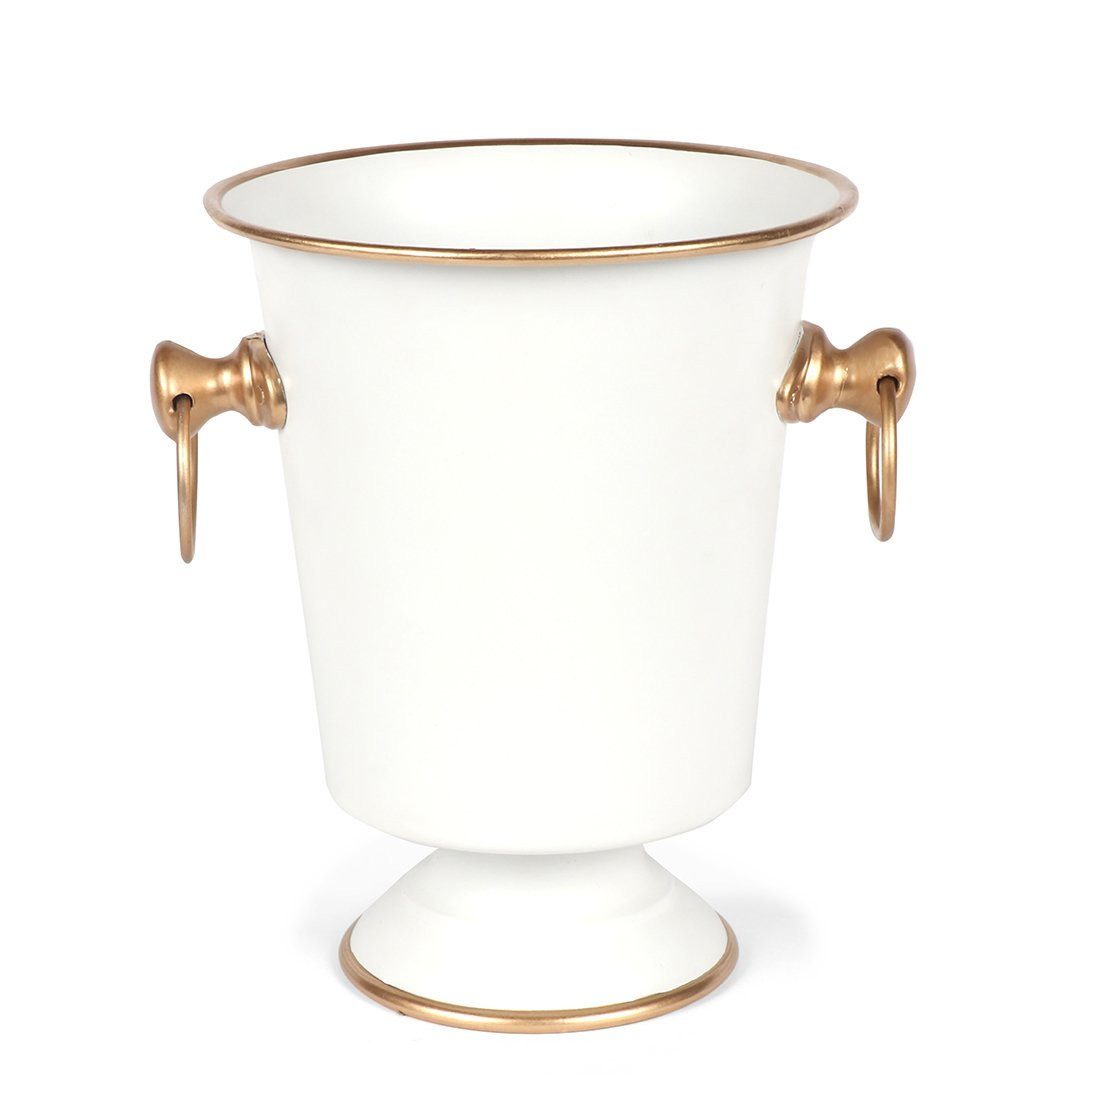 White and Gold Ice Bucket - The Preppy Bunny